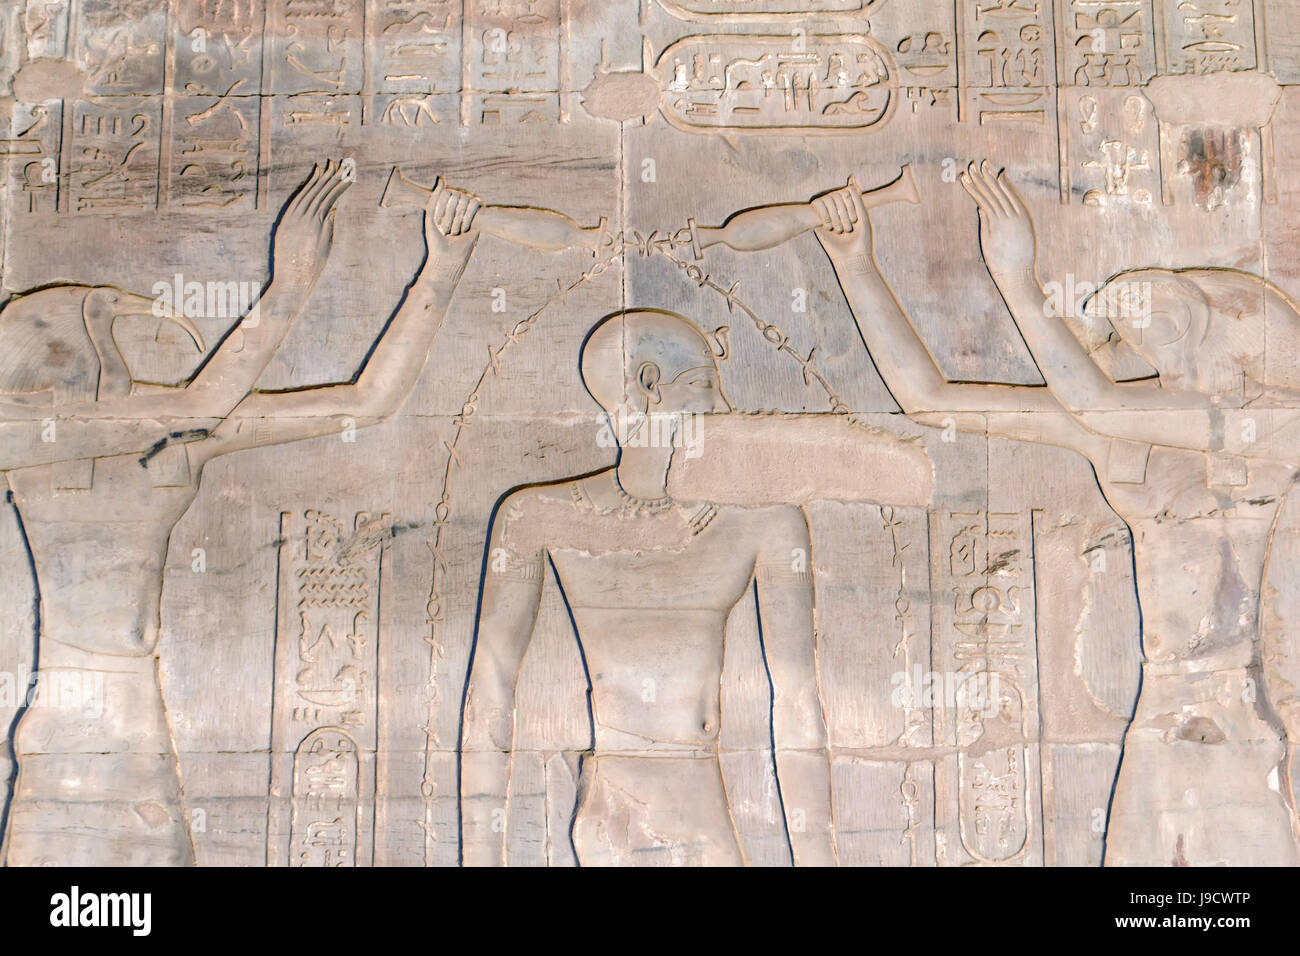 temple, wall, egypt, carving, archeology, pictogram, symbol stock